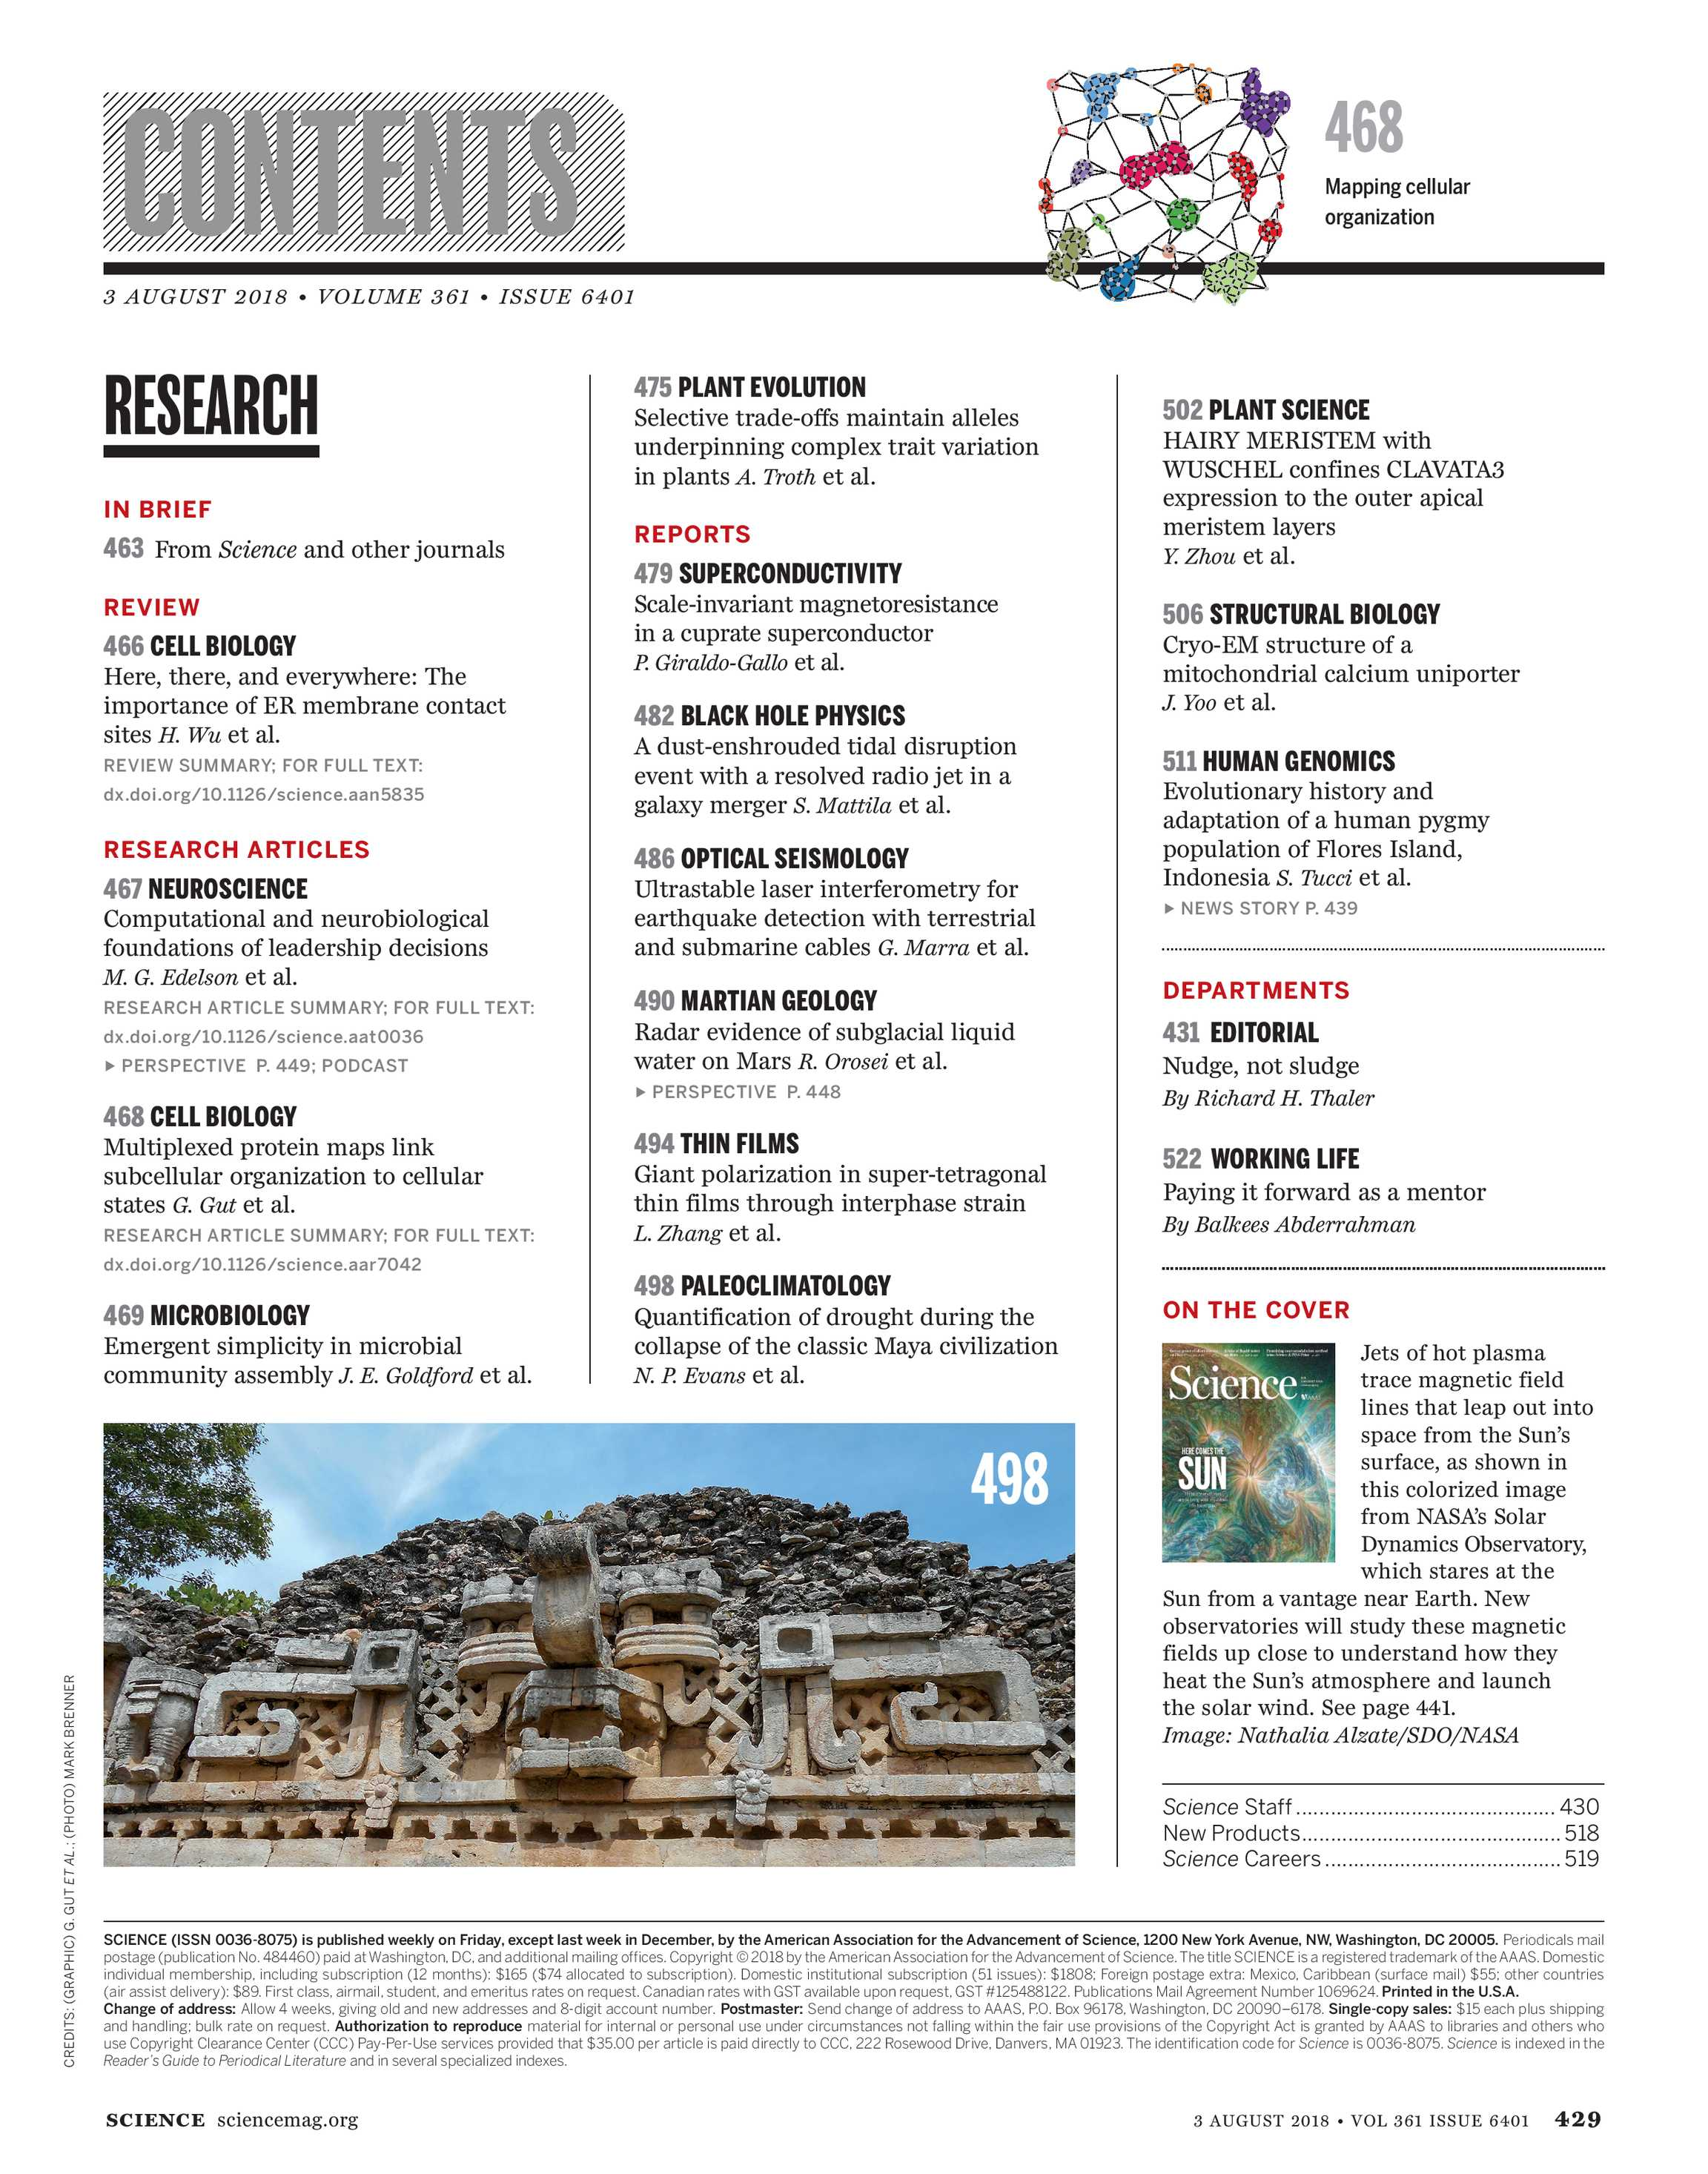 Science Magazine - August 3, 2018 - page 430